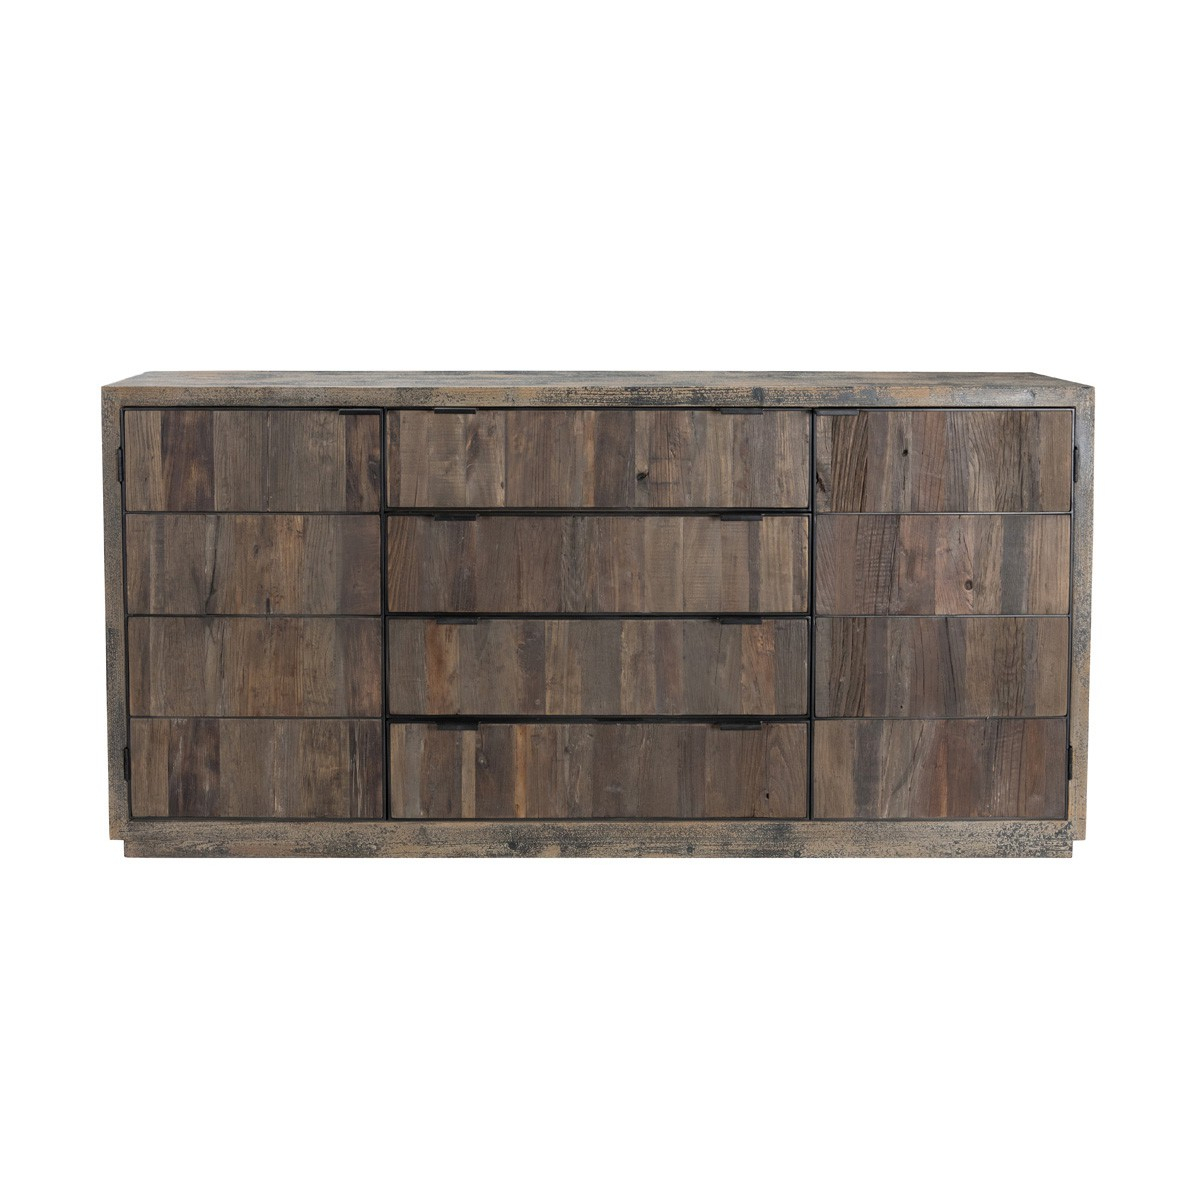 Andy 4 Dwr 2 Dr Sideboard Regarding Recent Solana Sideboards (#3 of 20)